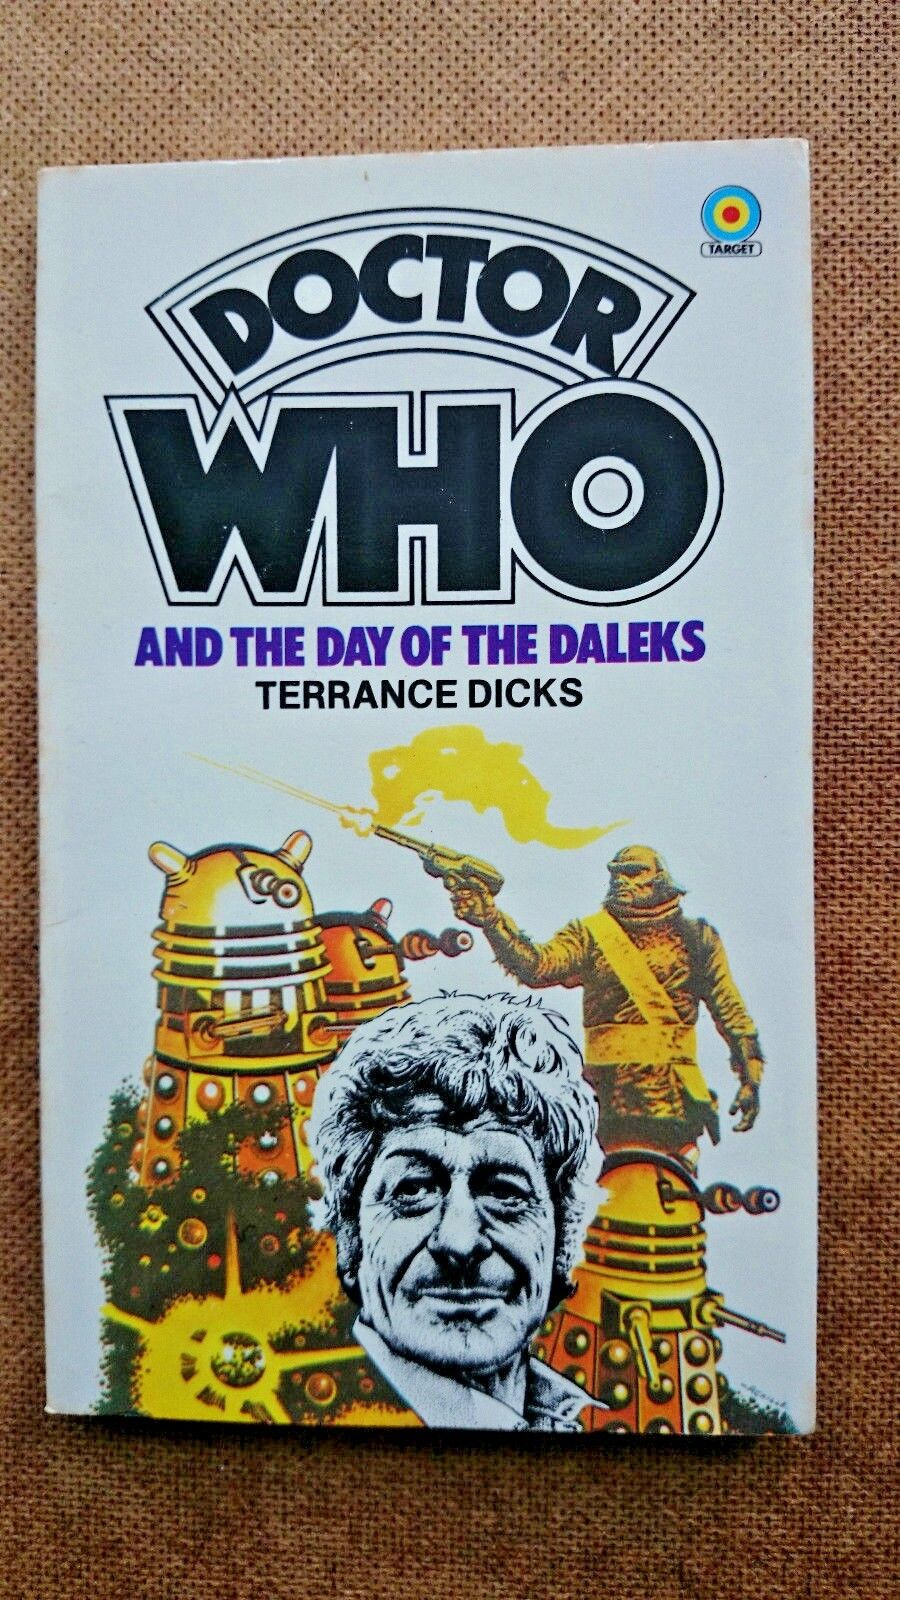 Doctor Who and the Day of the Daleks by Terrance Dicks (Paperback, 1982)